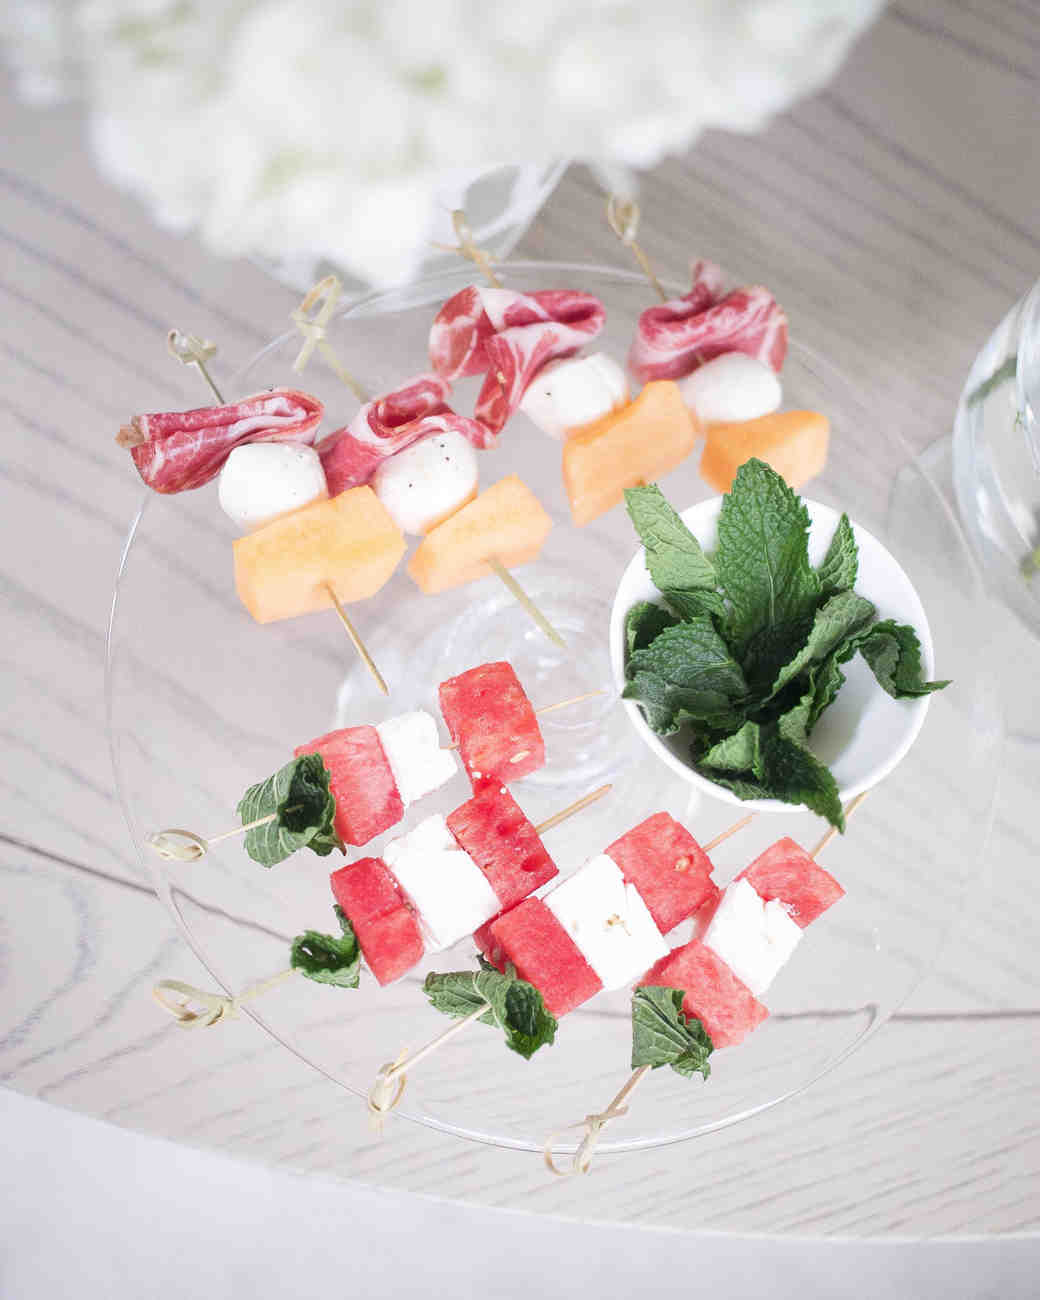 fashionable-hostess-bridal-shower-melon-kebabs-0416.jpg